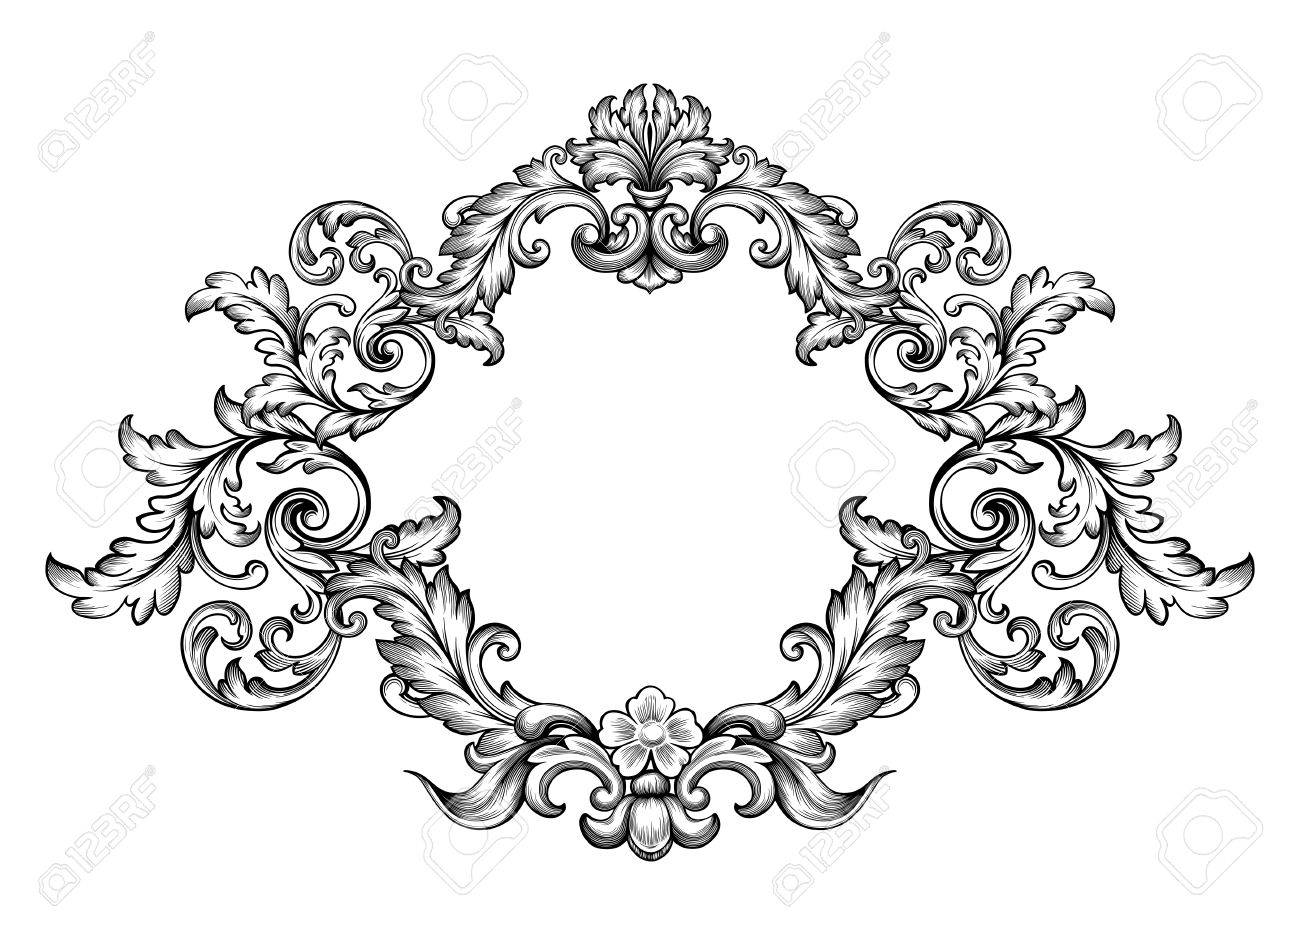 vintage baroque victorian frame royalty free cliparts vectors and rh 123rf com victorian oval frame vector round victorian frame vector